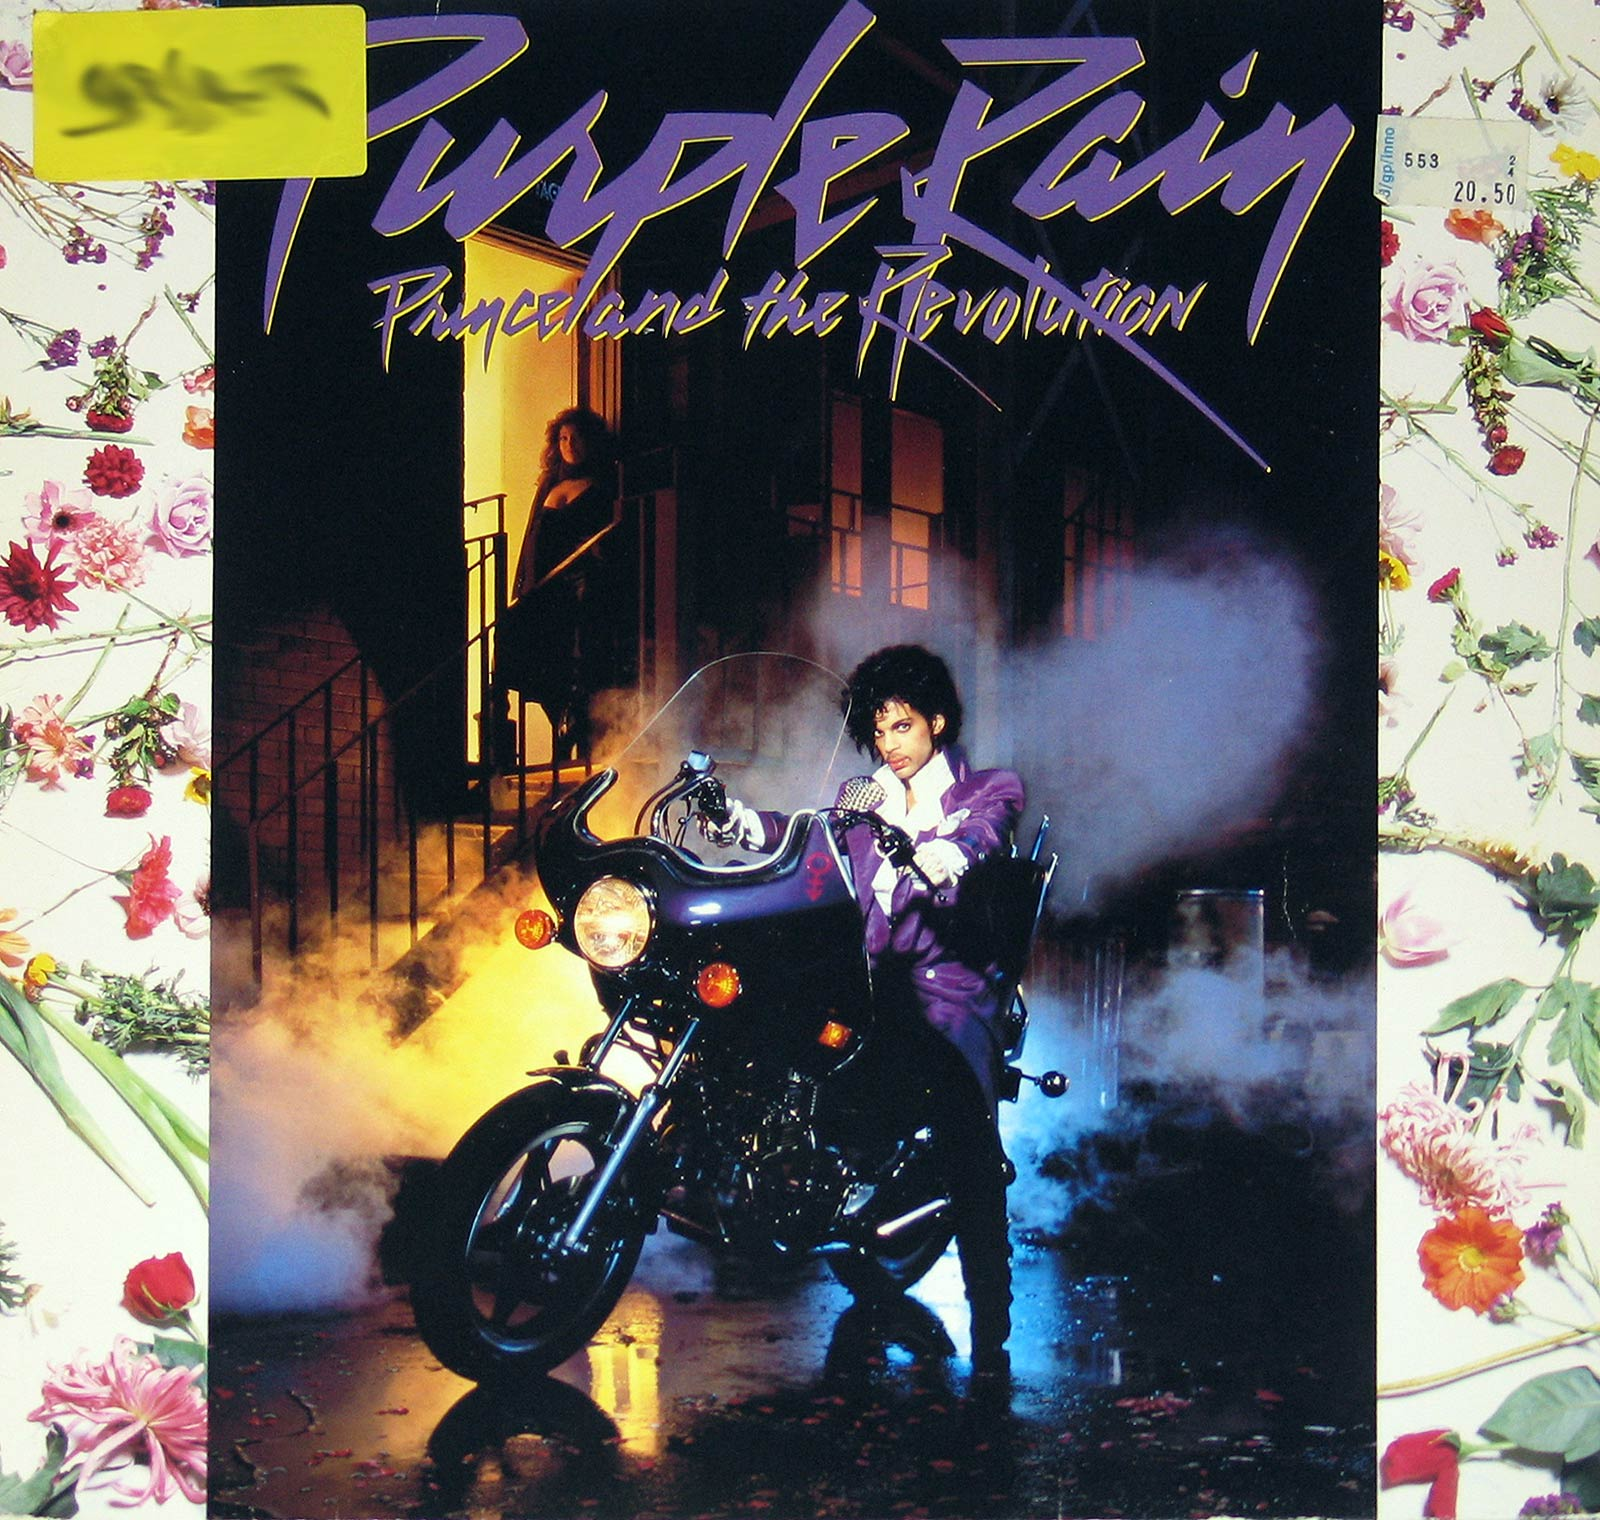 large photo of the album front cover of: Purple Rain by Prince and the Revolution